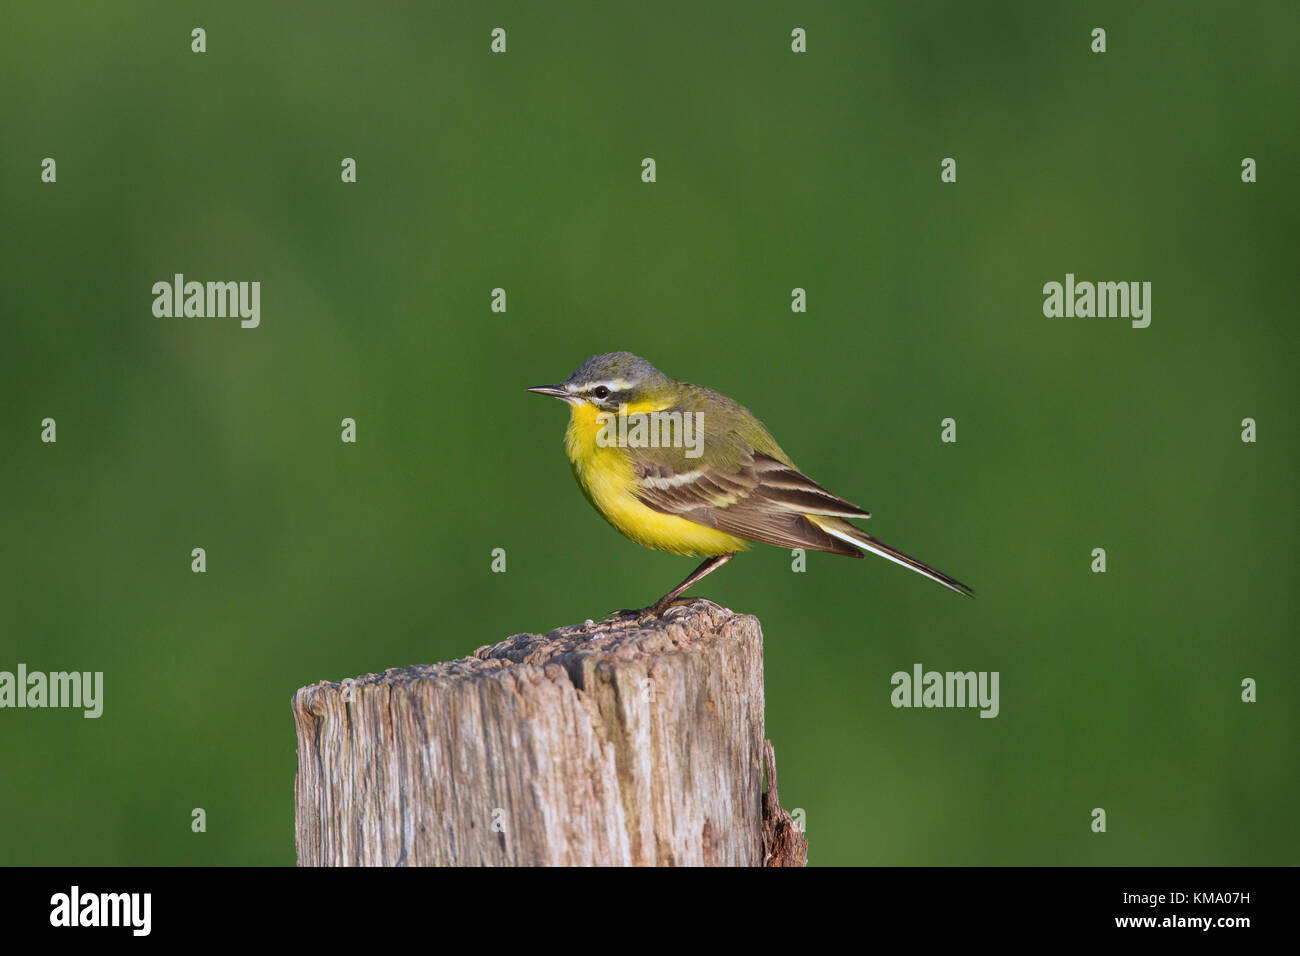 Western yellow wagtail (Motacilla flava), male perched on wooden fence post - Stock Image